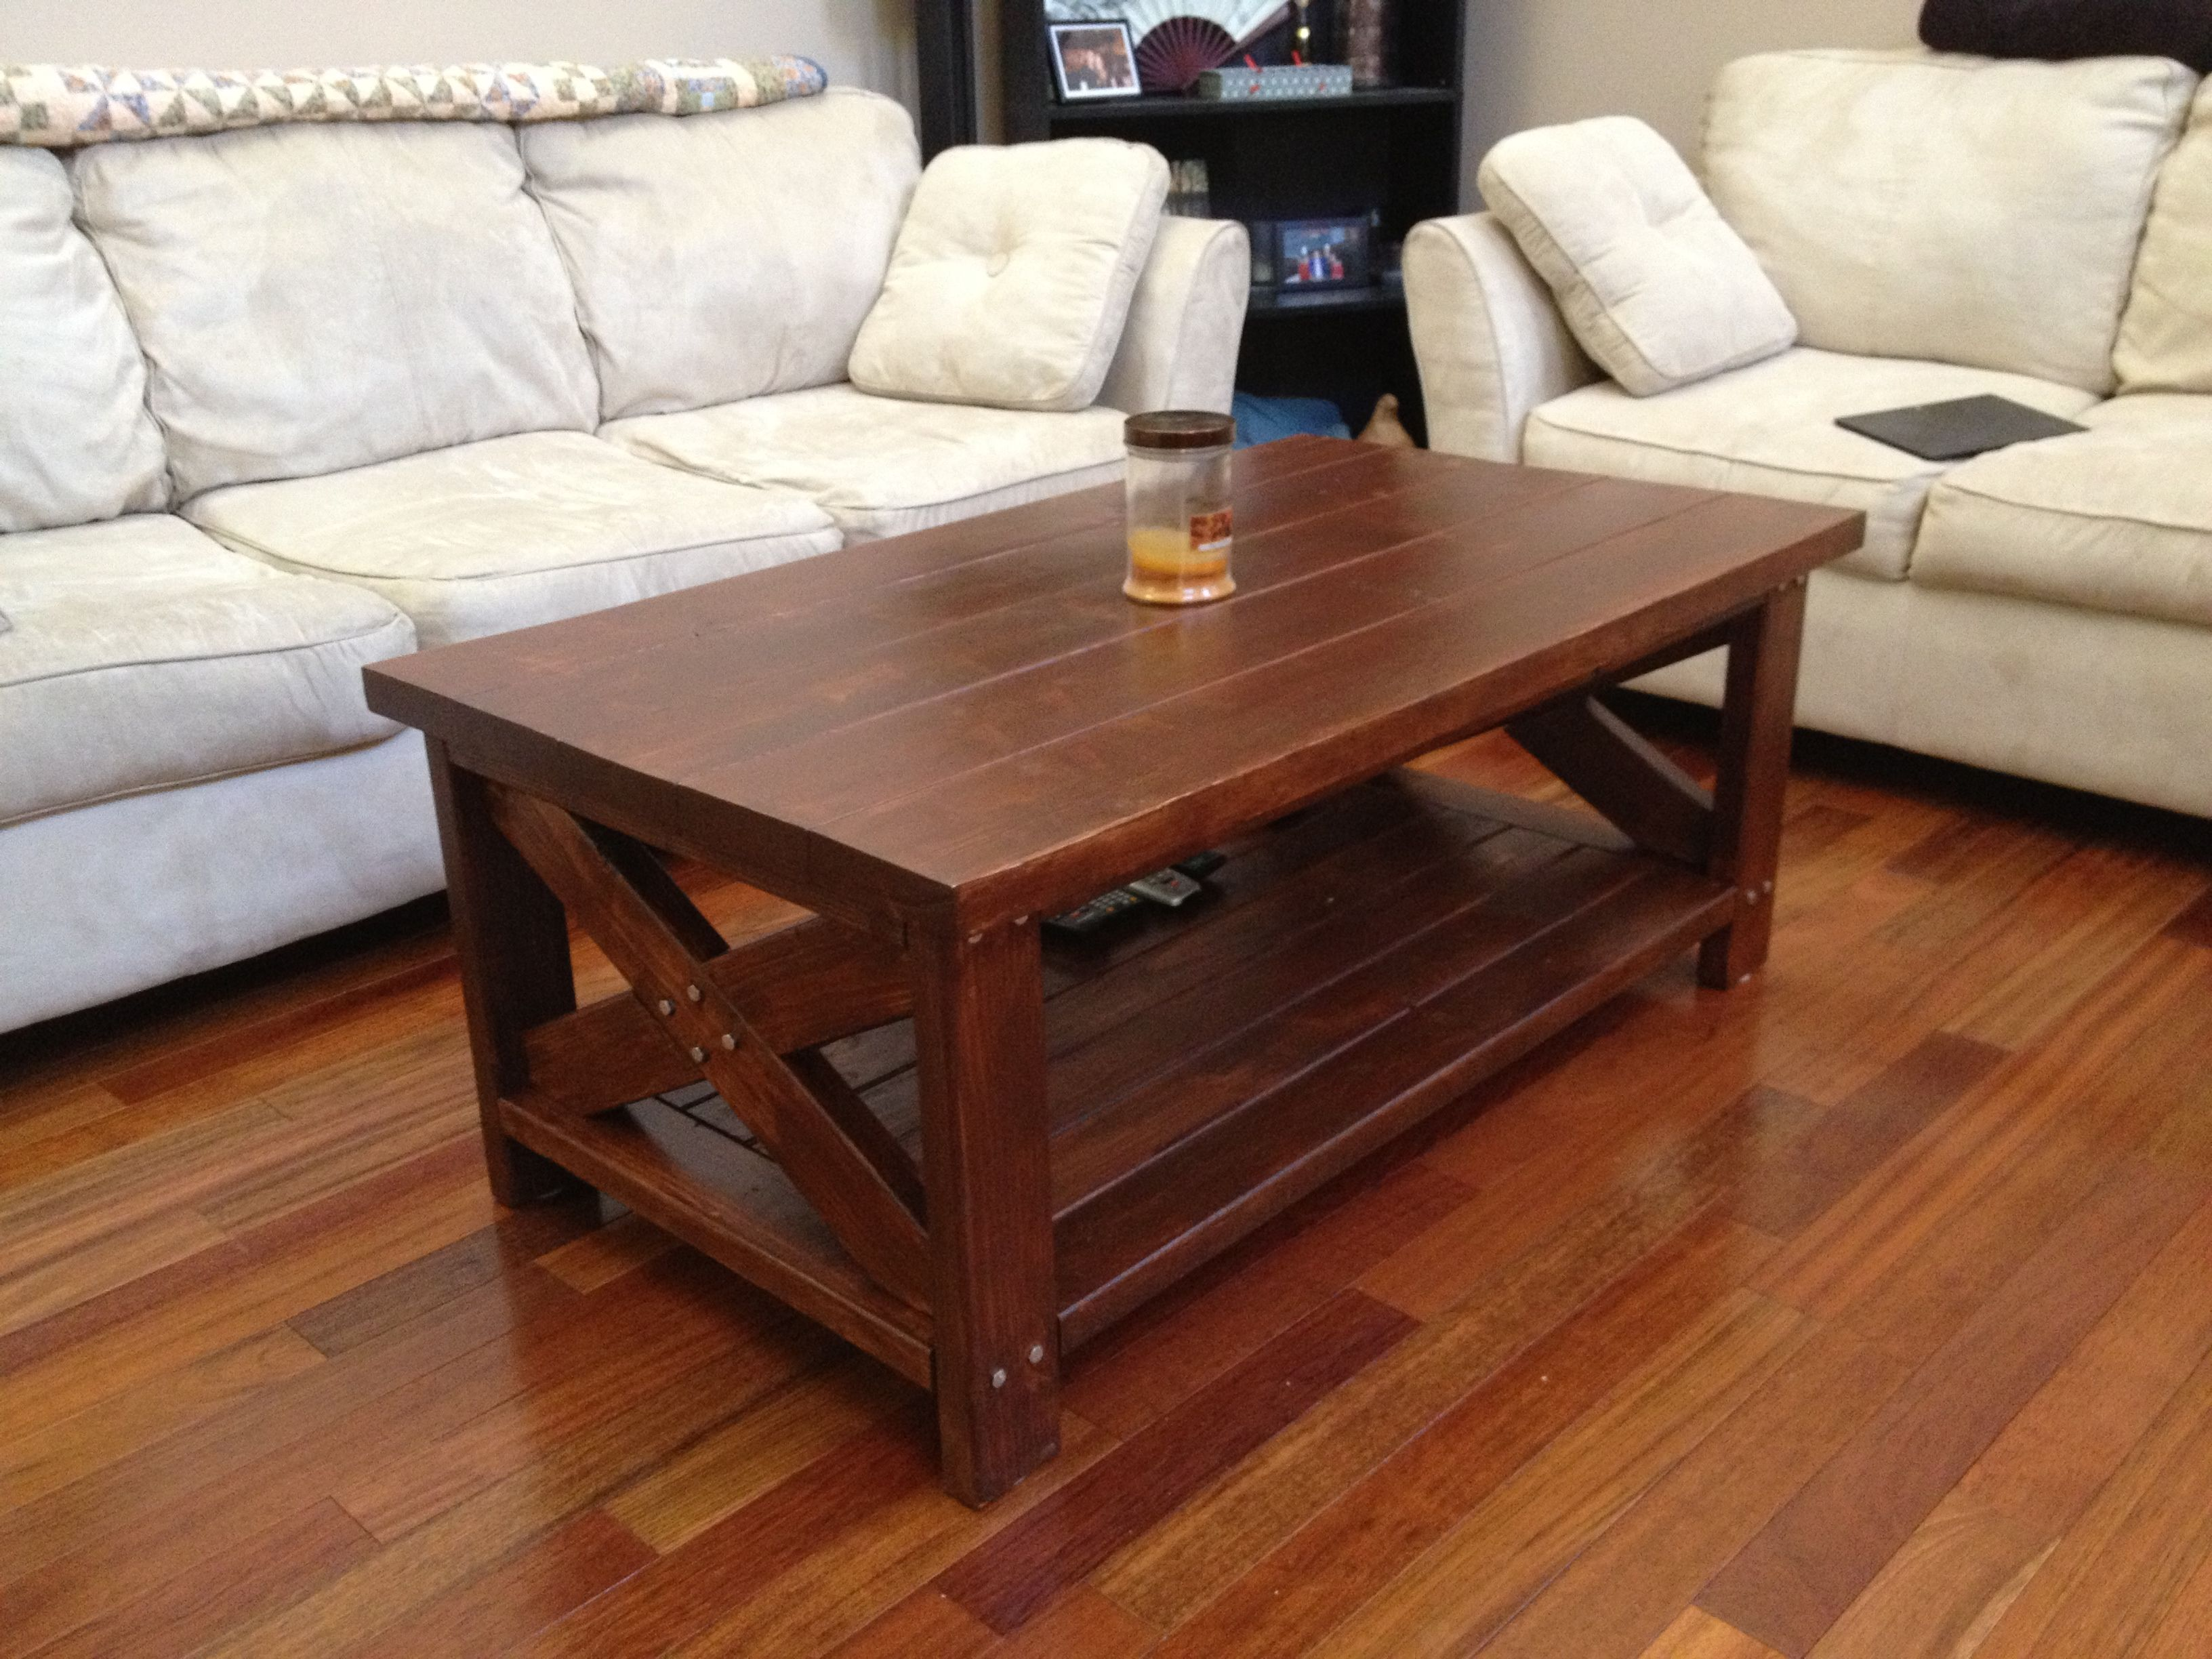 Rustic Farm Style Coffee Table Made From 2x4s And 2x6s